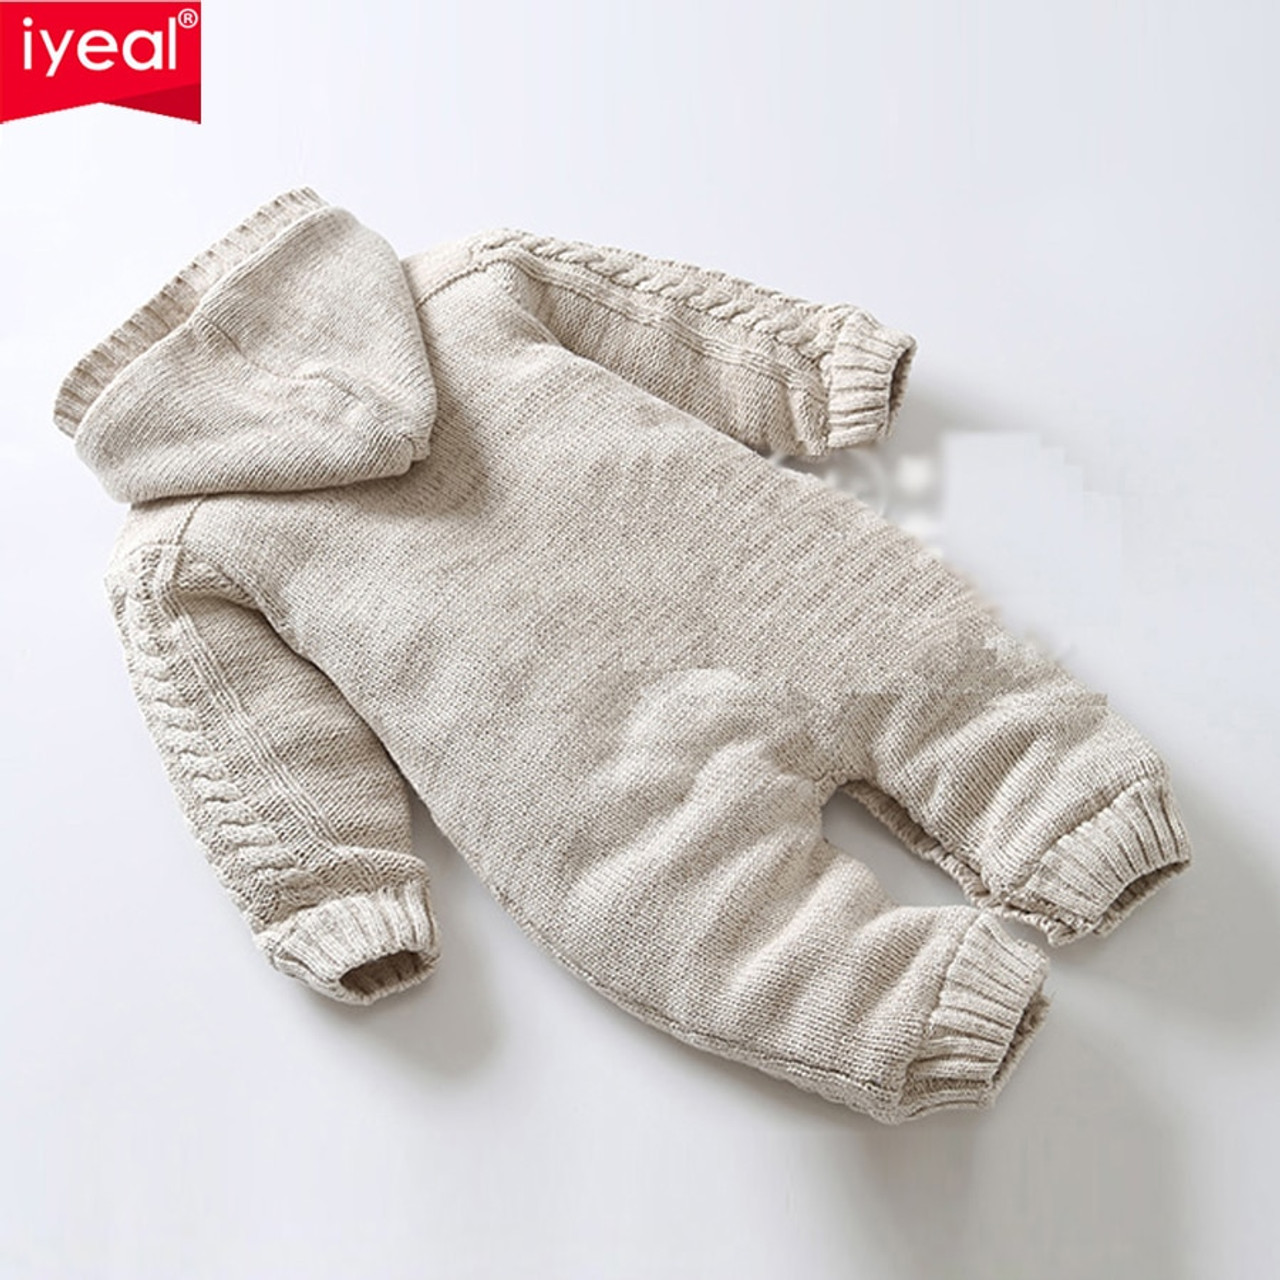 e30af865085 ... IYEAL Thick Warm Infant Baby Rompers Winter Clothes Newborn Baby Boy  Girl Knitted Sweater Jumpsuit Hooded ...